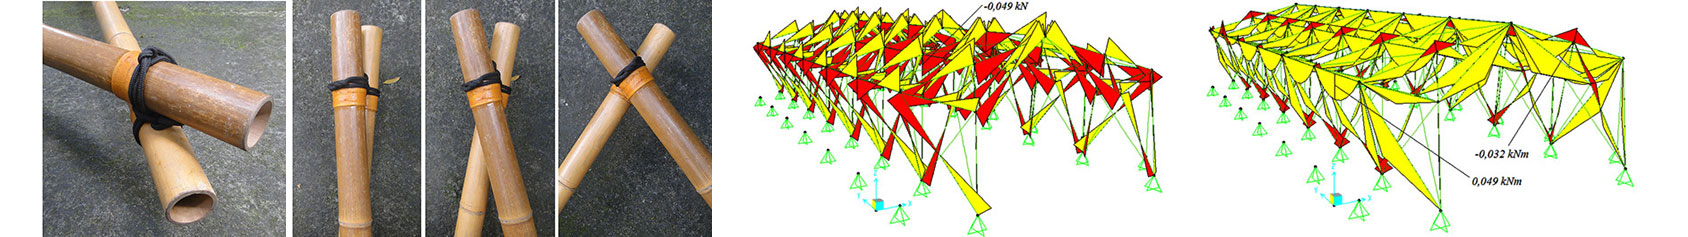 Design-and-analysis-of-a-bamboo-roof-structure-MIT-Boston-2018.jpg